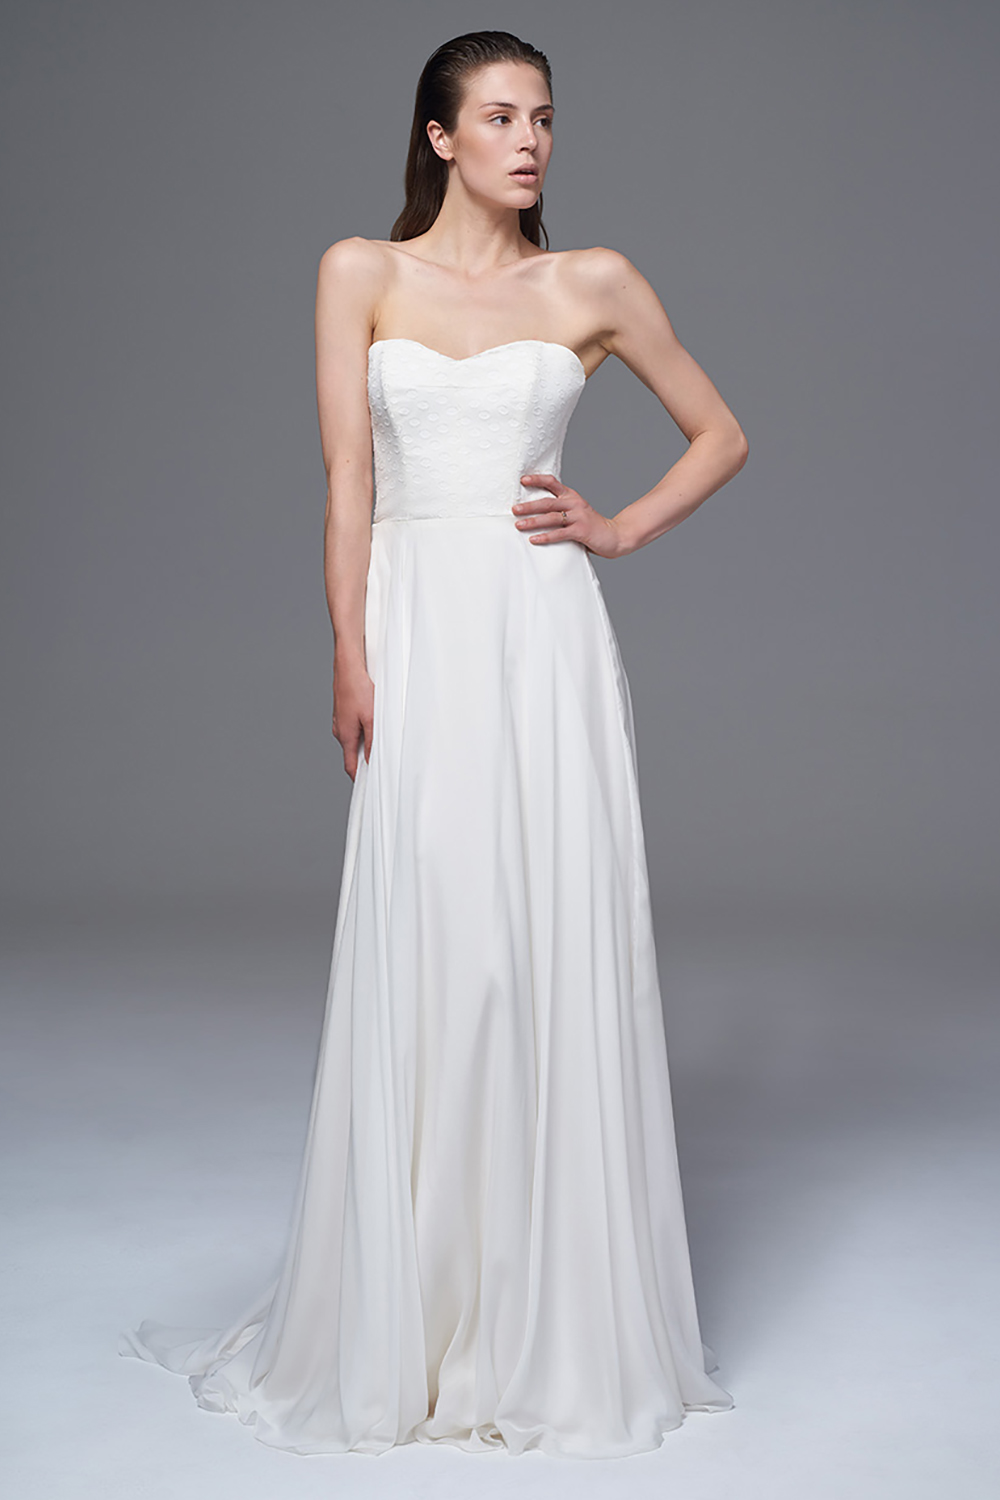 THE ELKE POLKA DOT AND CHIFFON STRAPLESS DRESS. BRIDAL WEDDING DRESS BY HALFPENNY LONDON